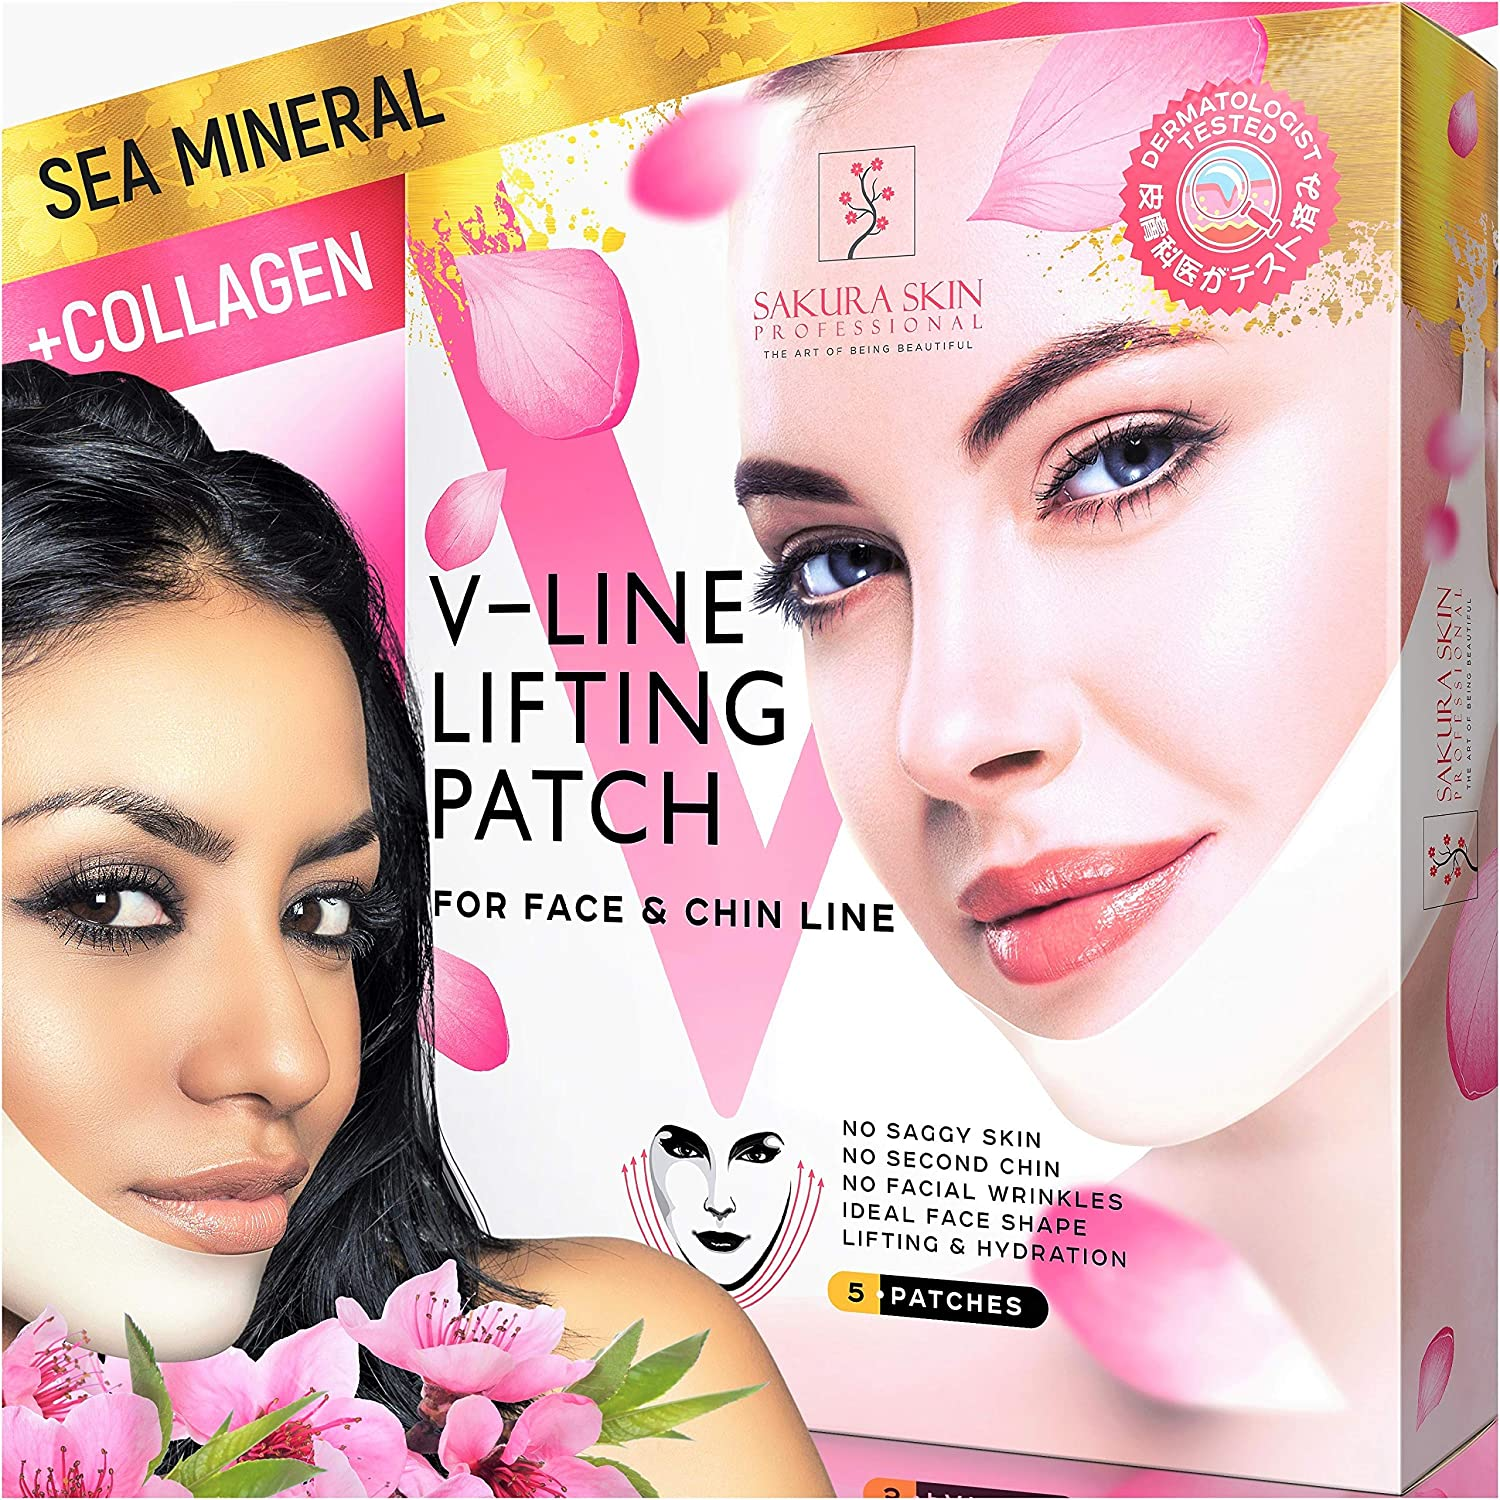 V Line Mask Neck Mask Face Lift V Lifting Chin Up Patch Double Chin Reducer Neck Lift V Up Contour Tightening Firming Moisturizing ?ollagen Chin Mask V Shape Face Lifting V Zone Mask Tape